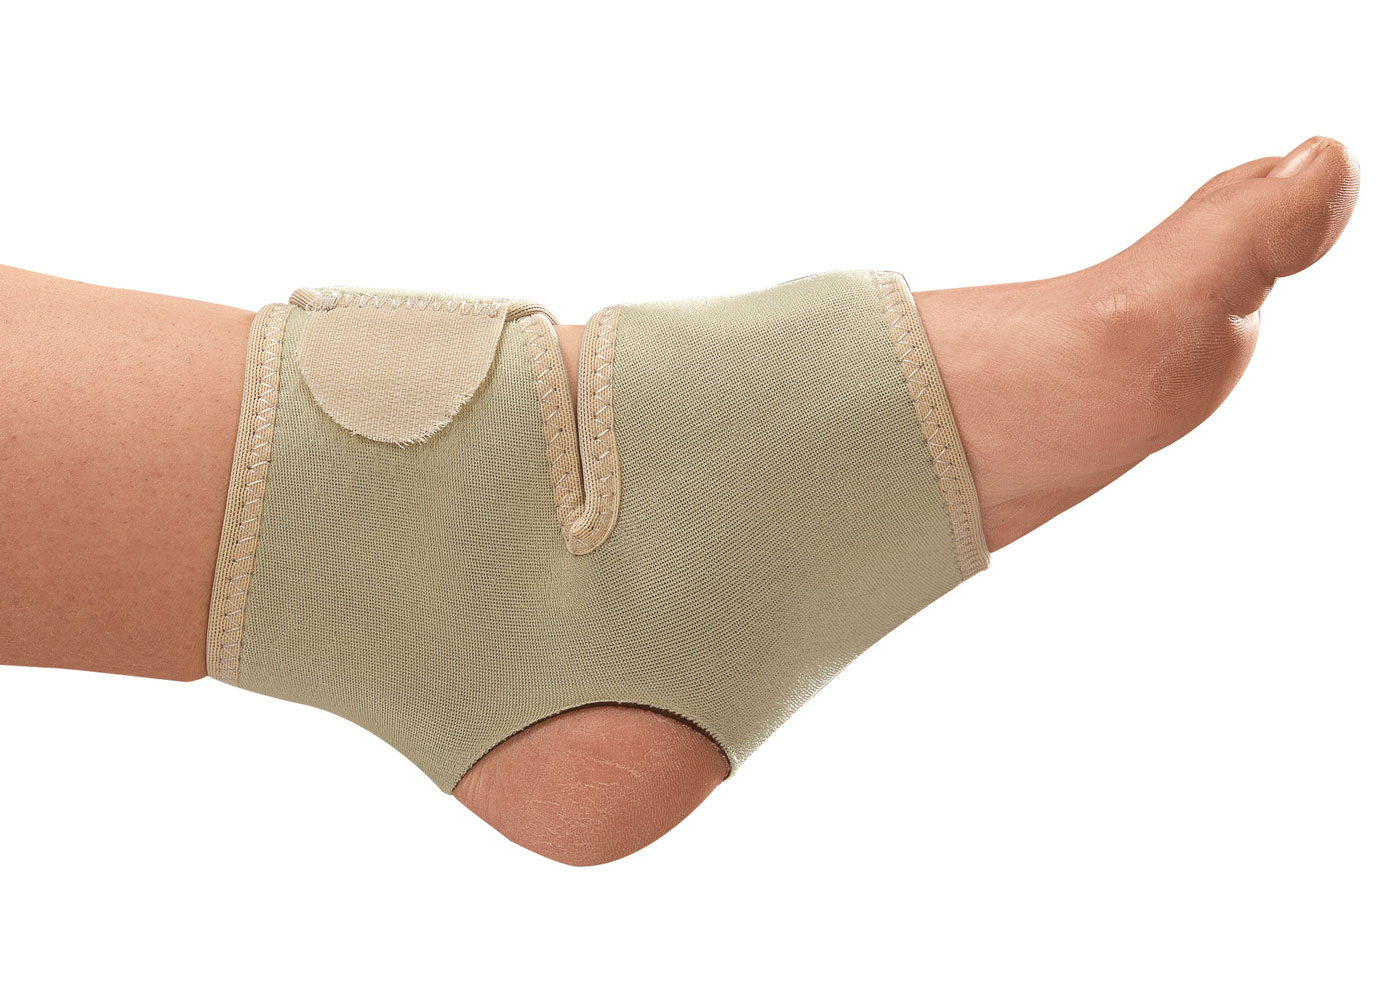 Bamboo Ankle Support, One Size